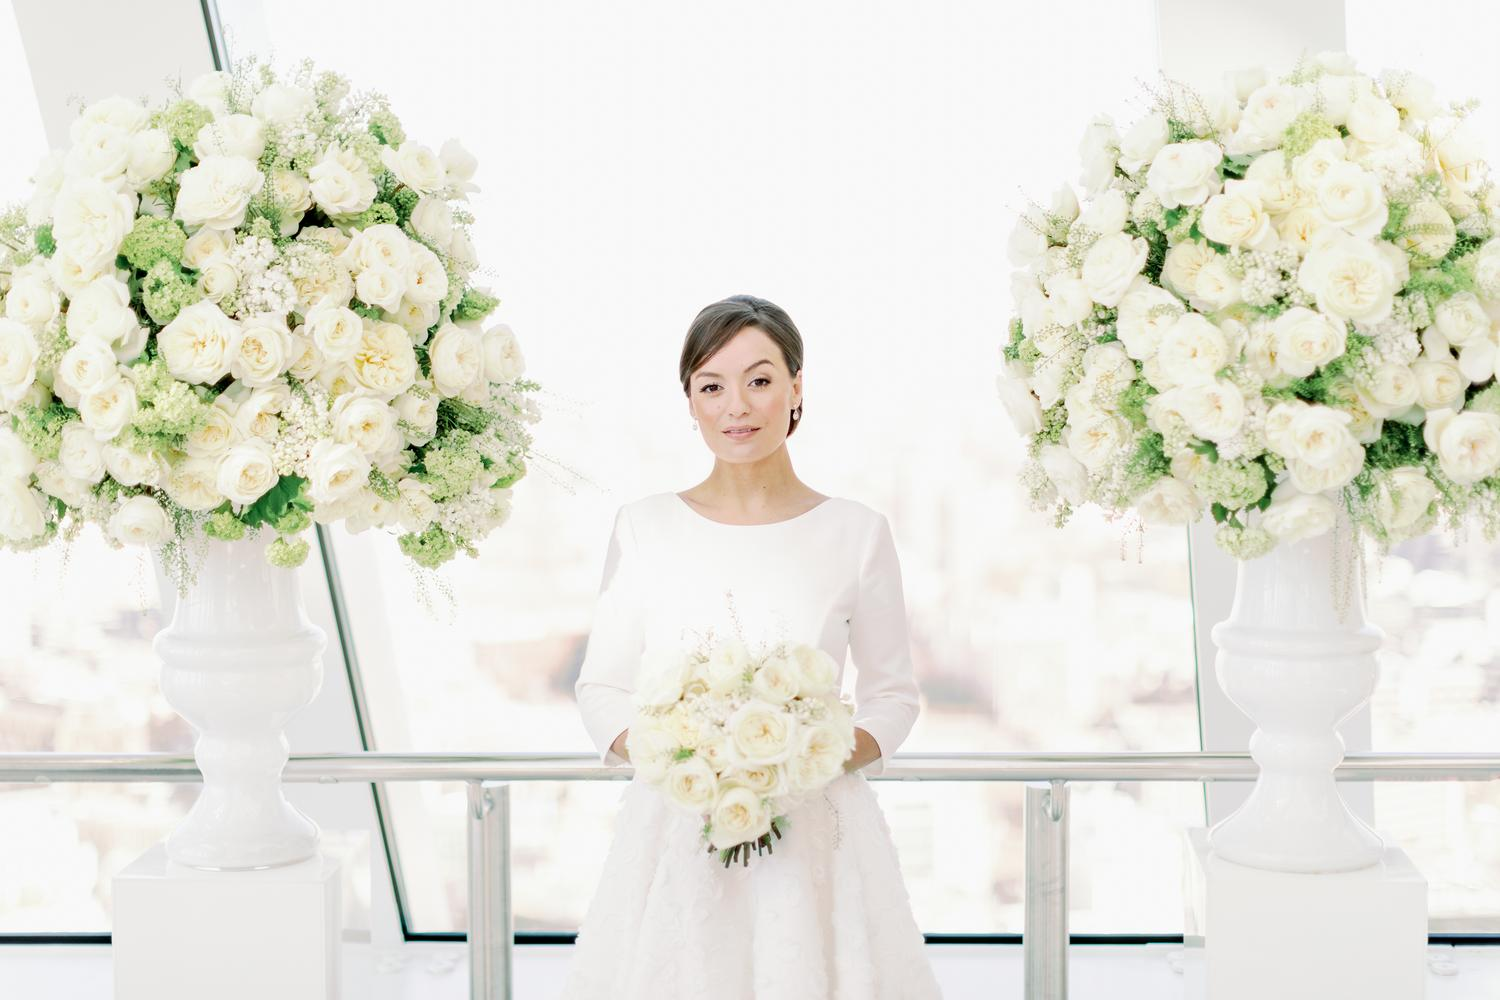 Ivory Wedding Roses Bouquet and Urns